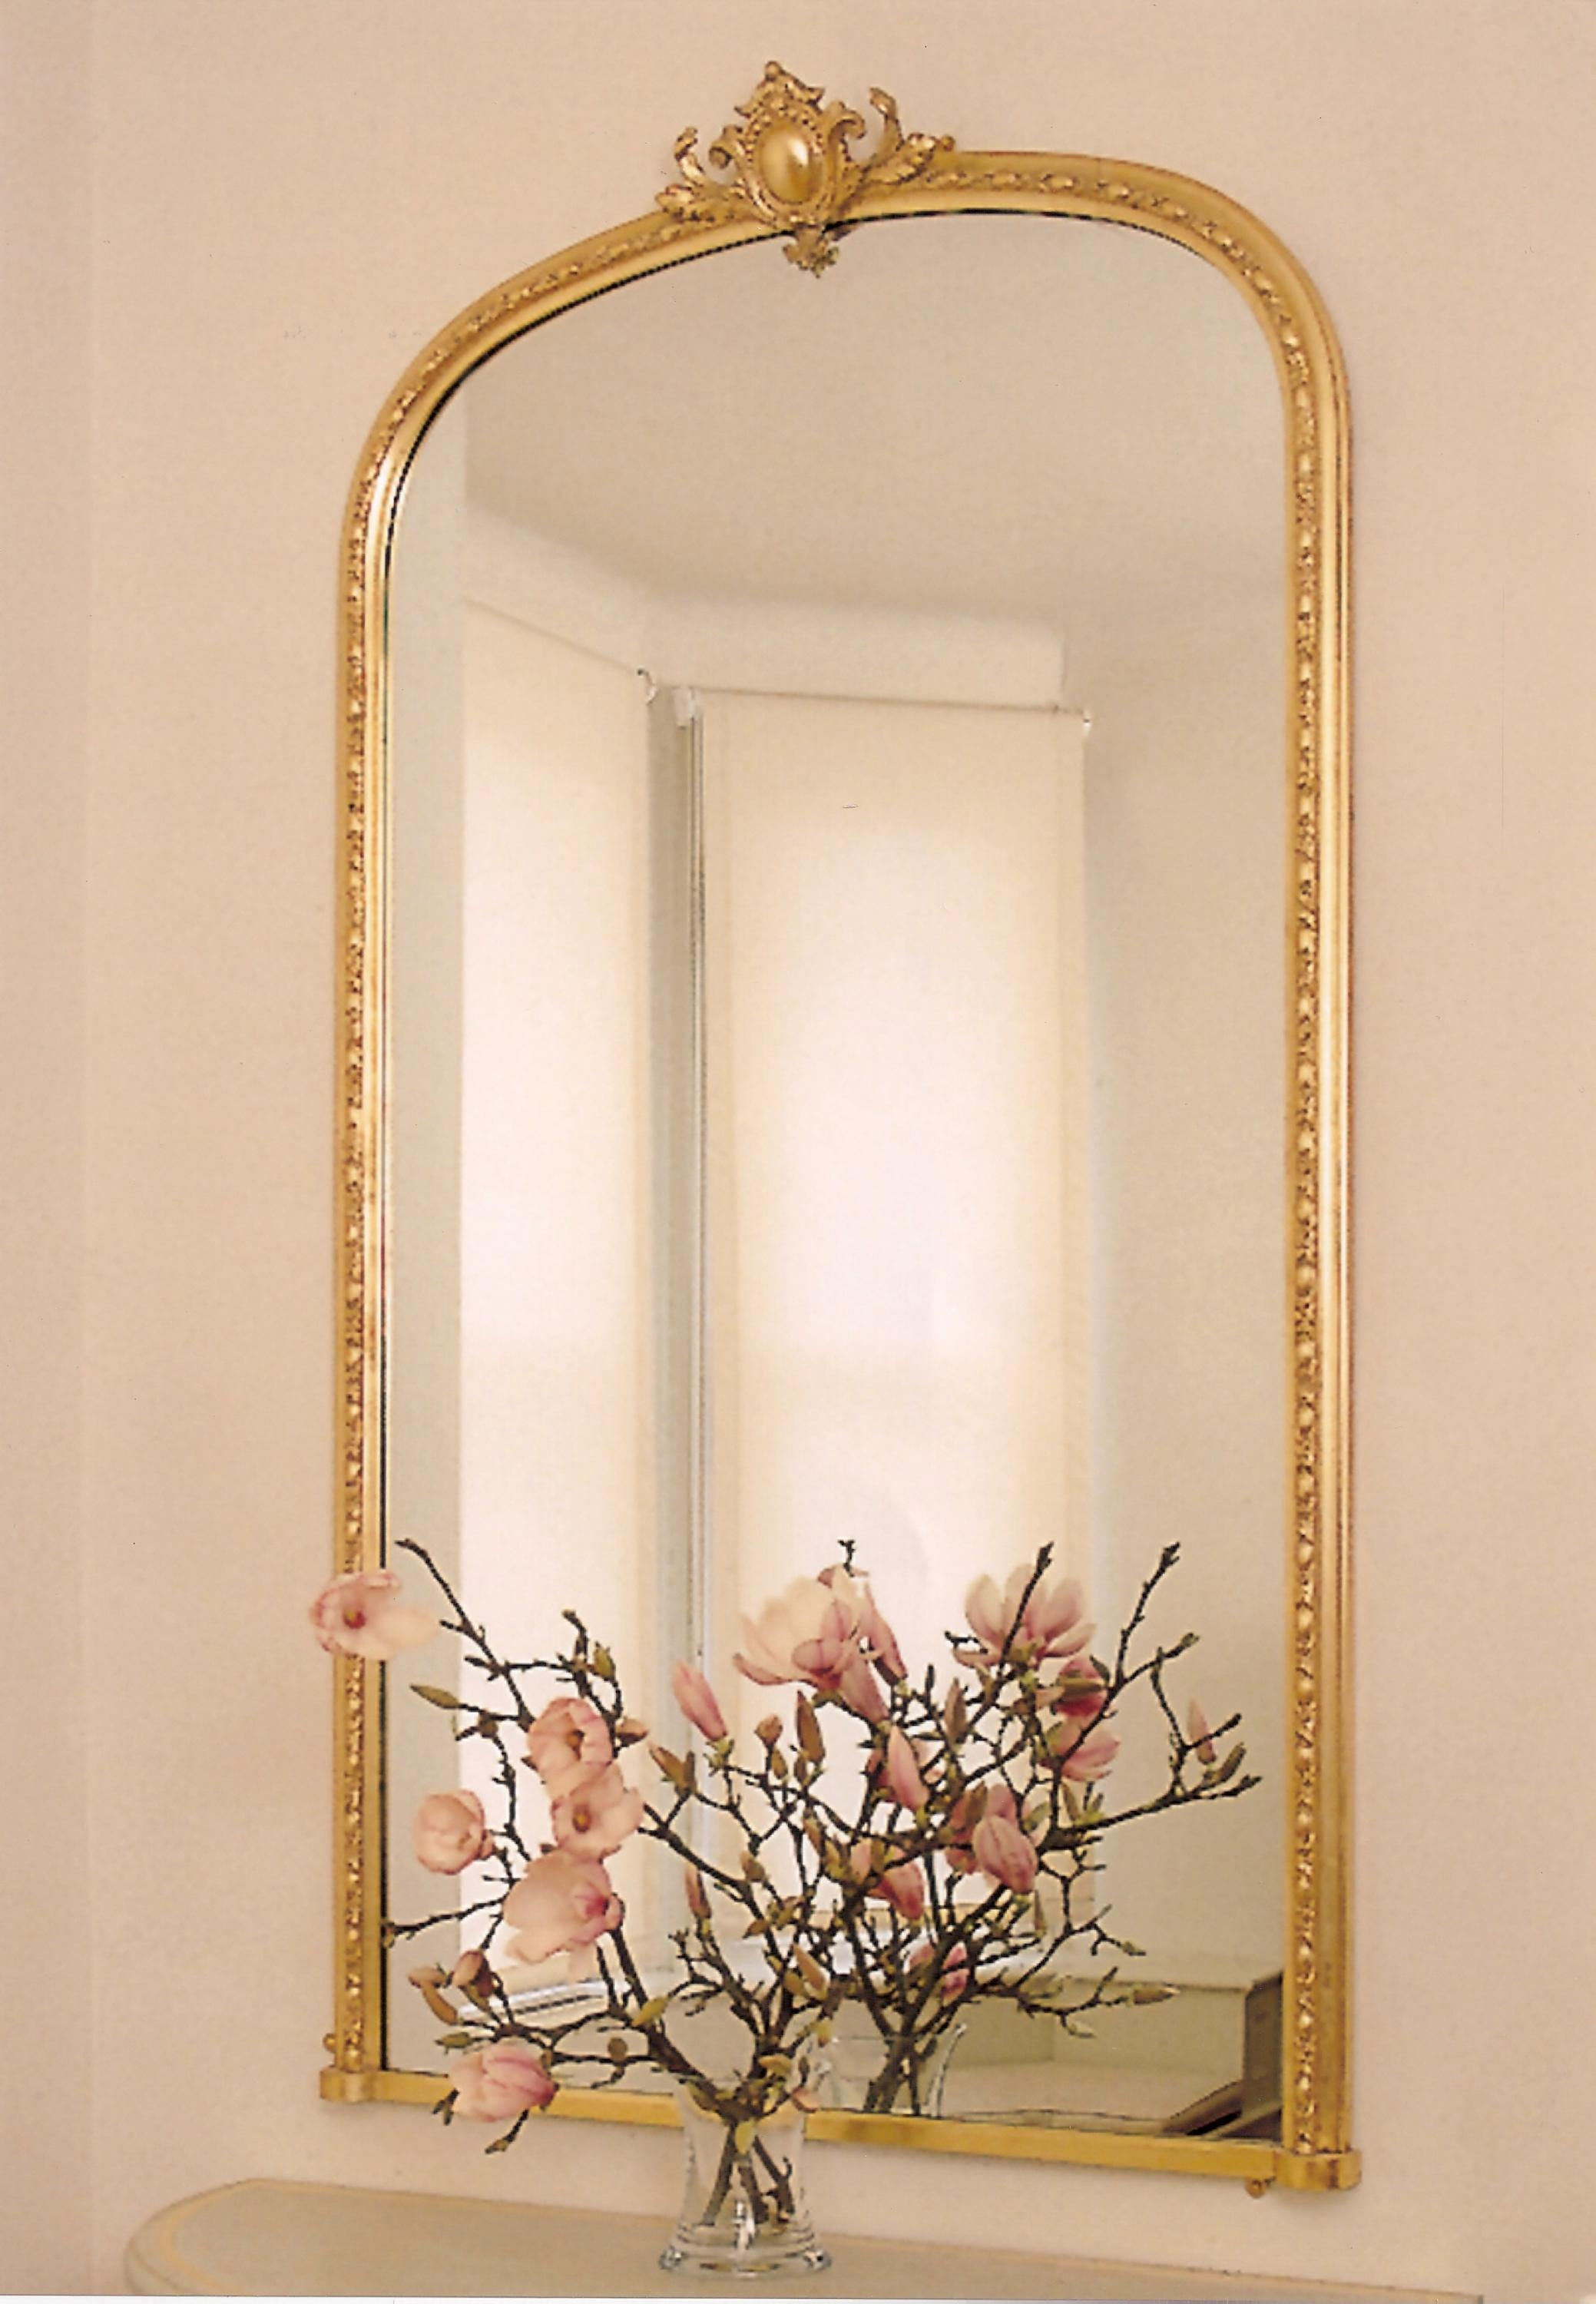 All Mirrors Overmantels In Reproduction Mirrors (View 7 of 15)